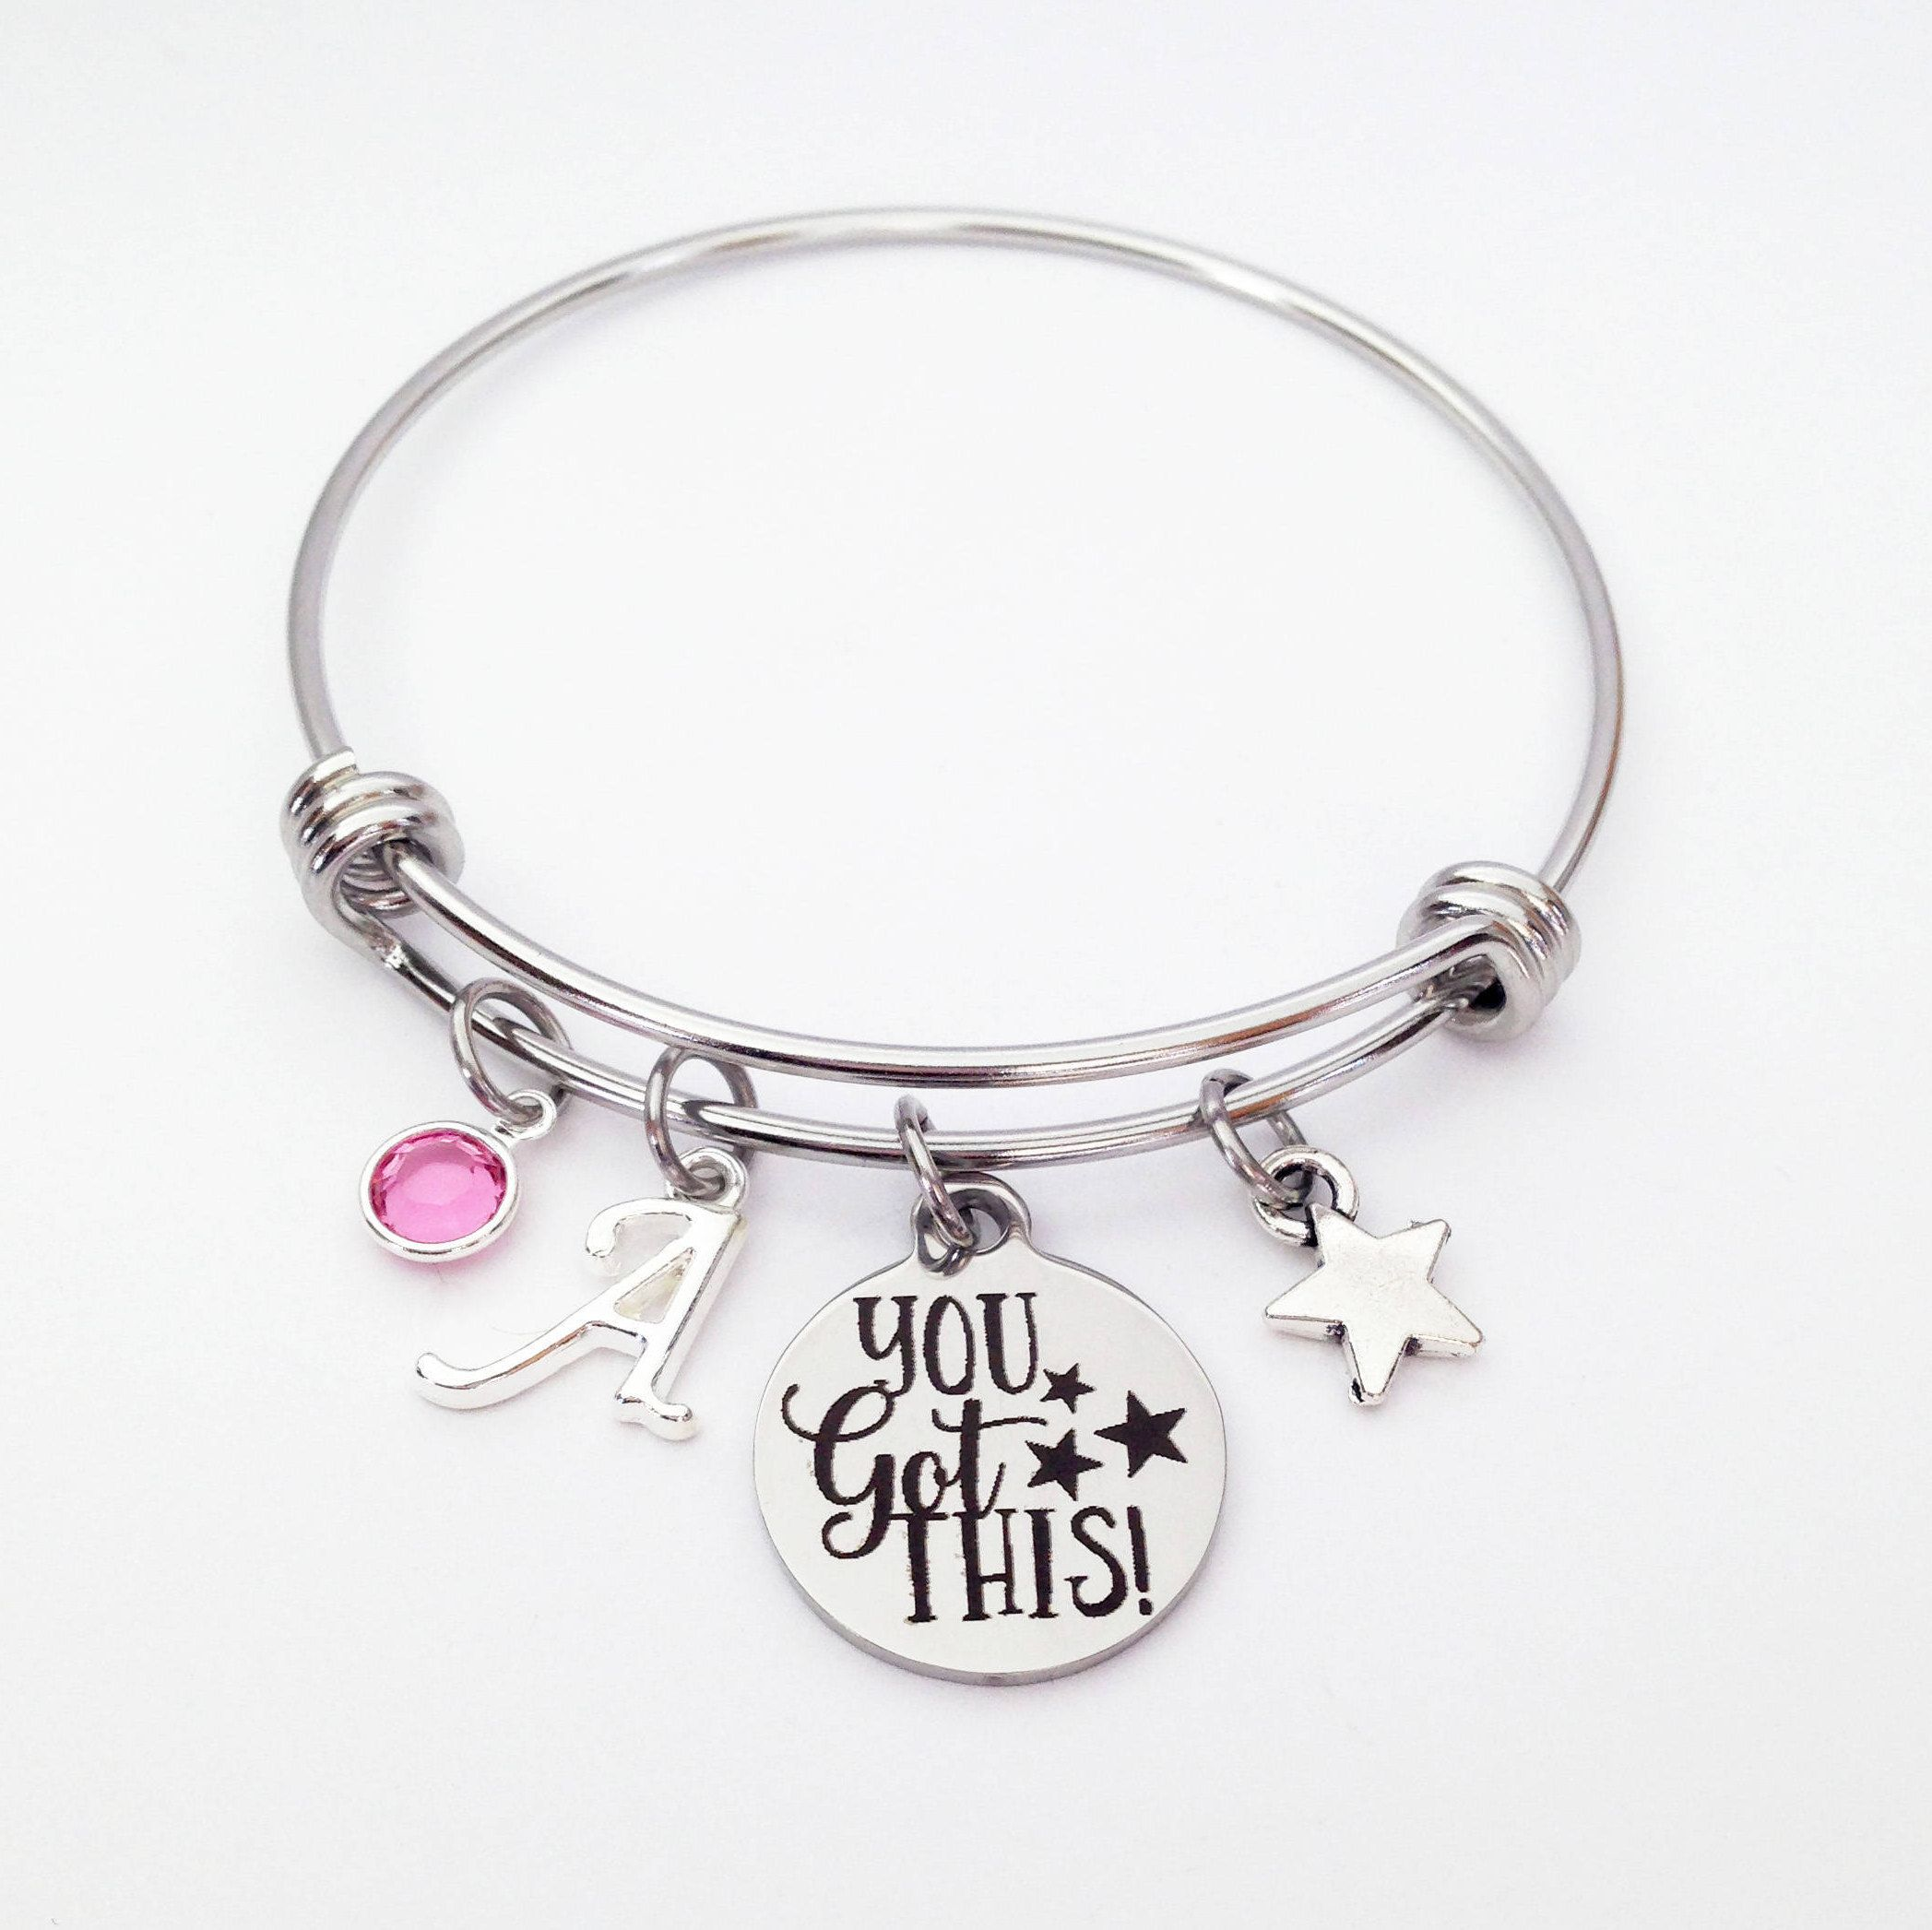 the go products cummings of bracelet heart with graduation in silver e carry hand dreams your i sterling confidently bangle direction poem me stamped